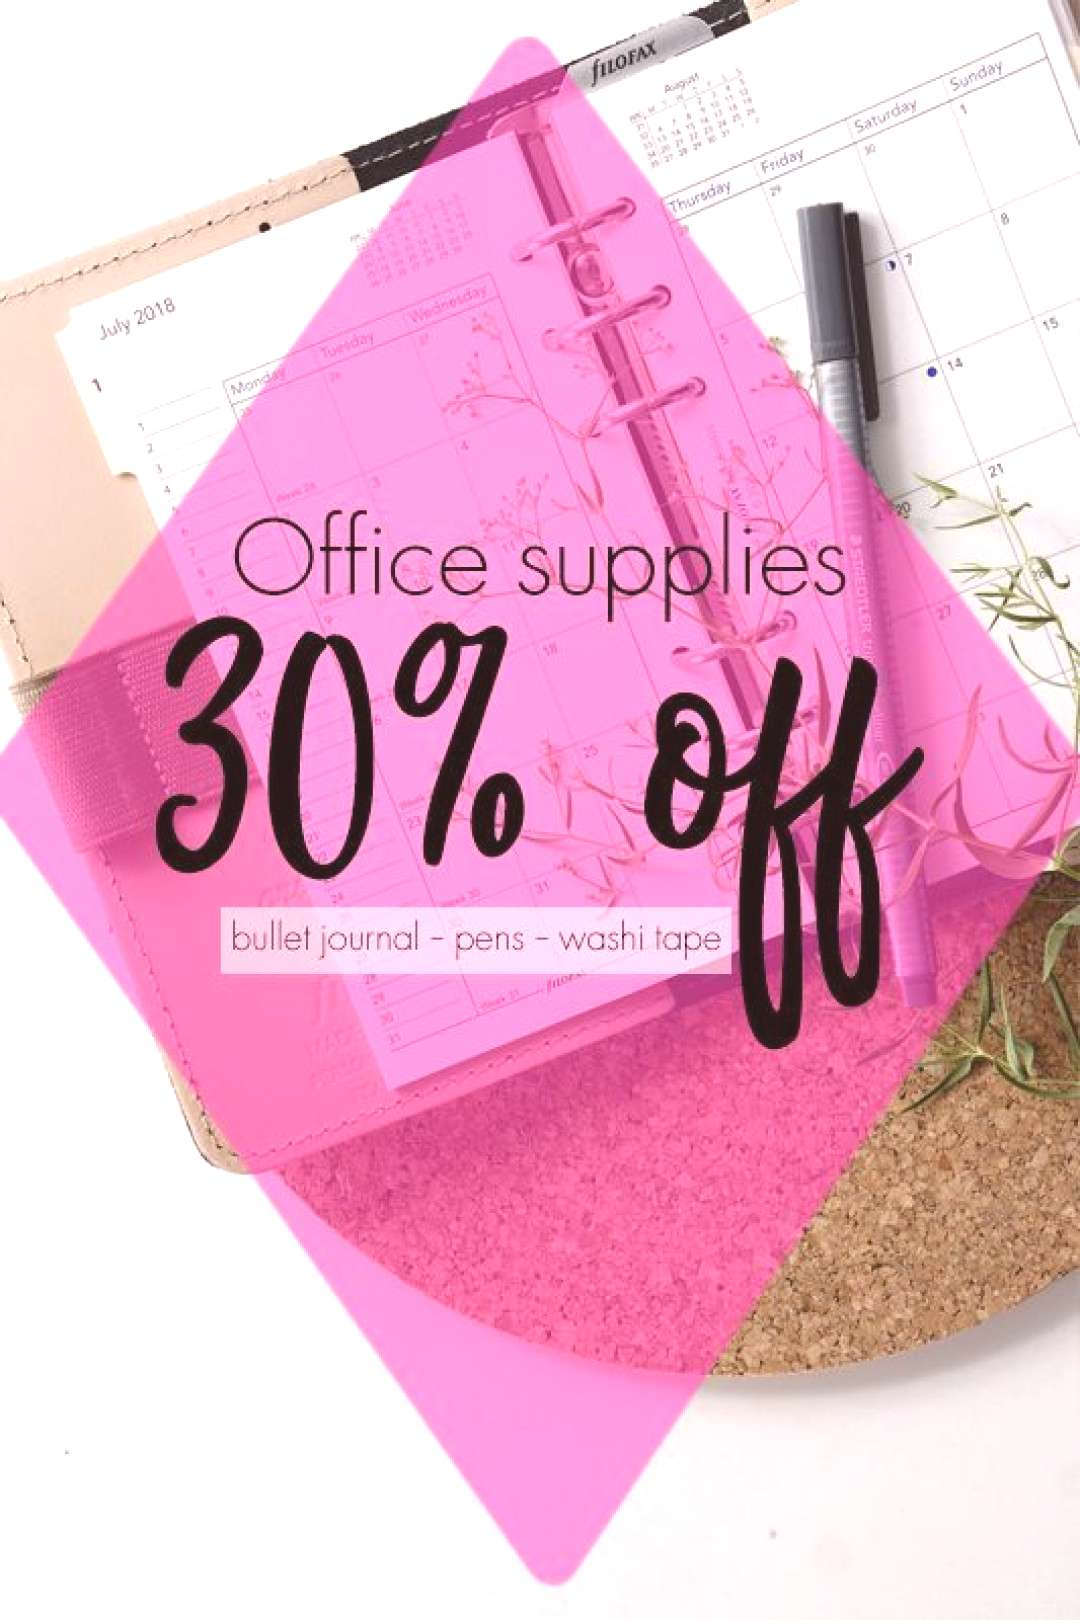 Get into your bullet journal groove with these office supplies. From washi tape to pens and everyth